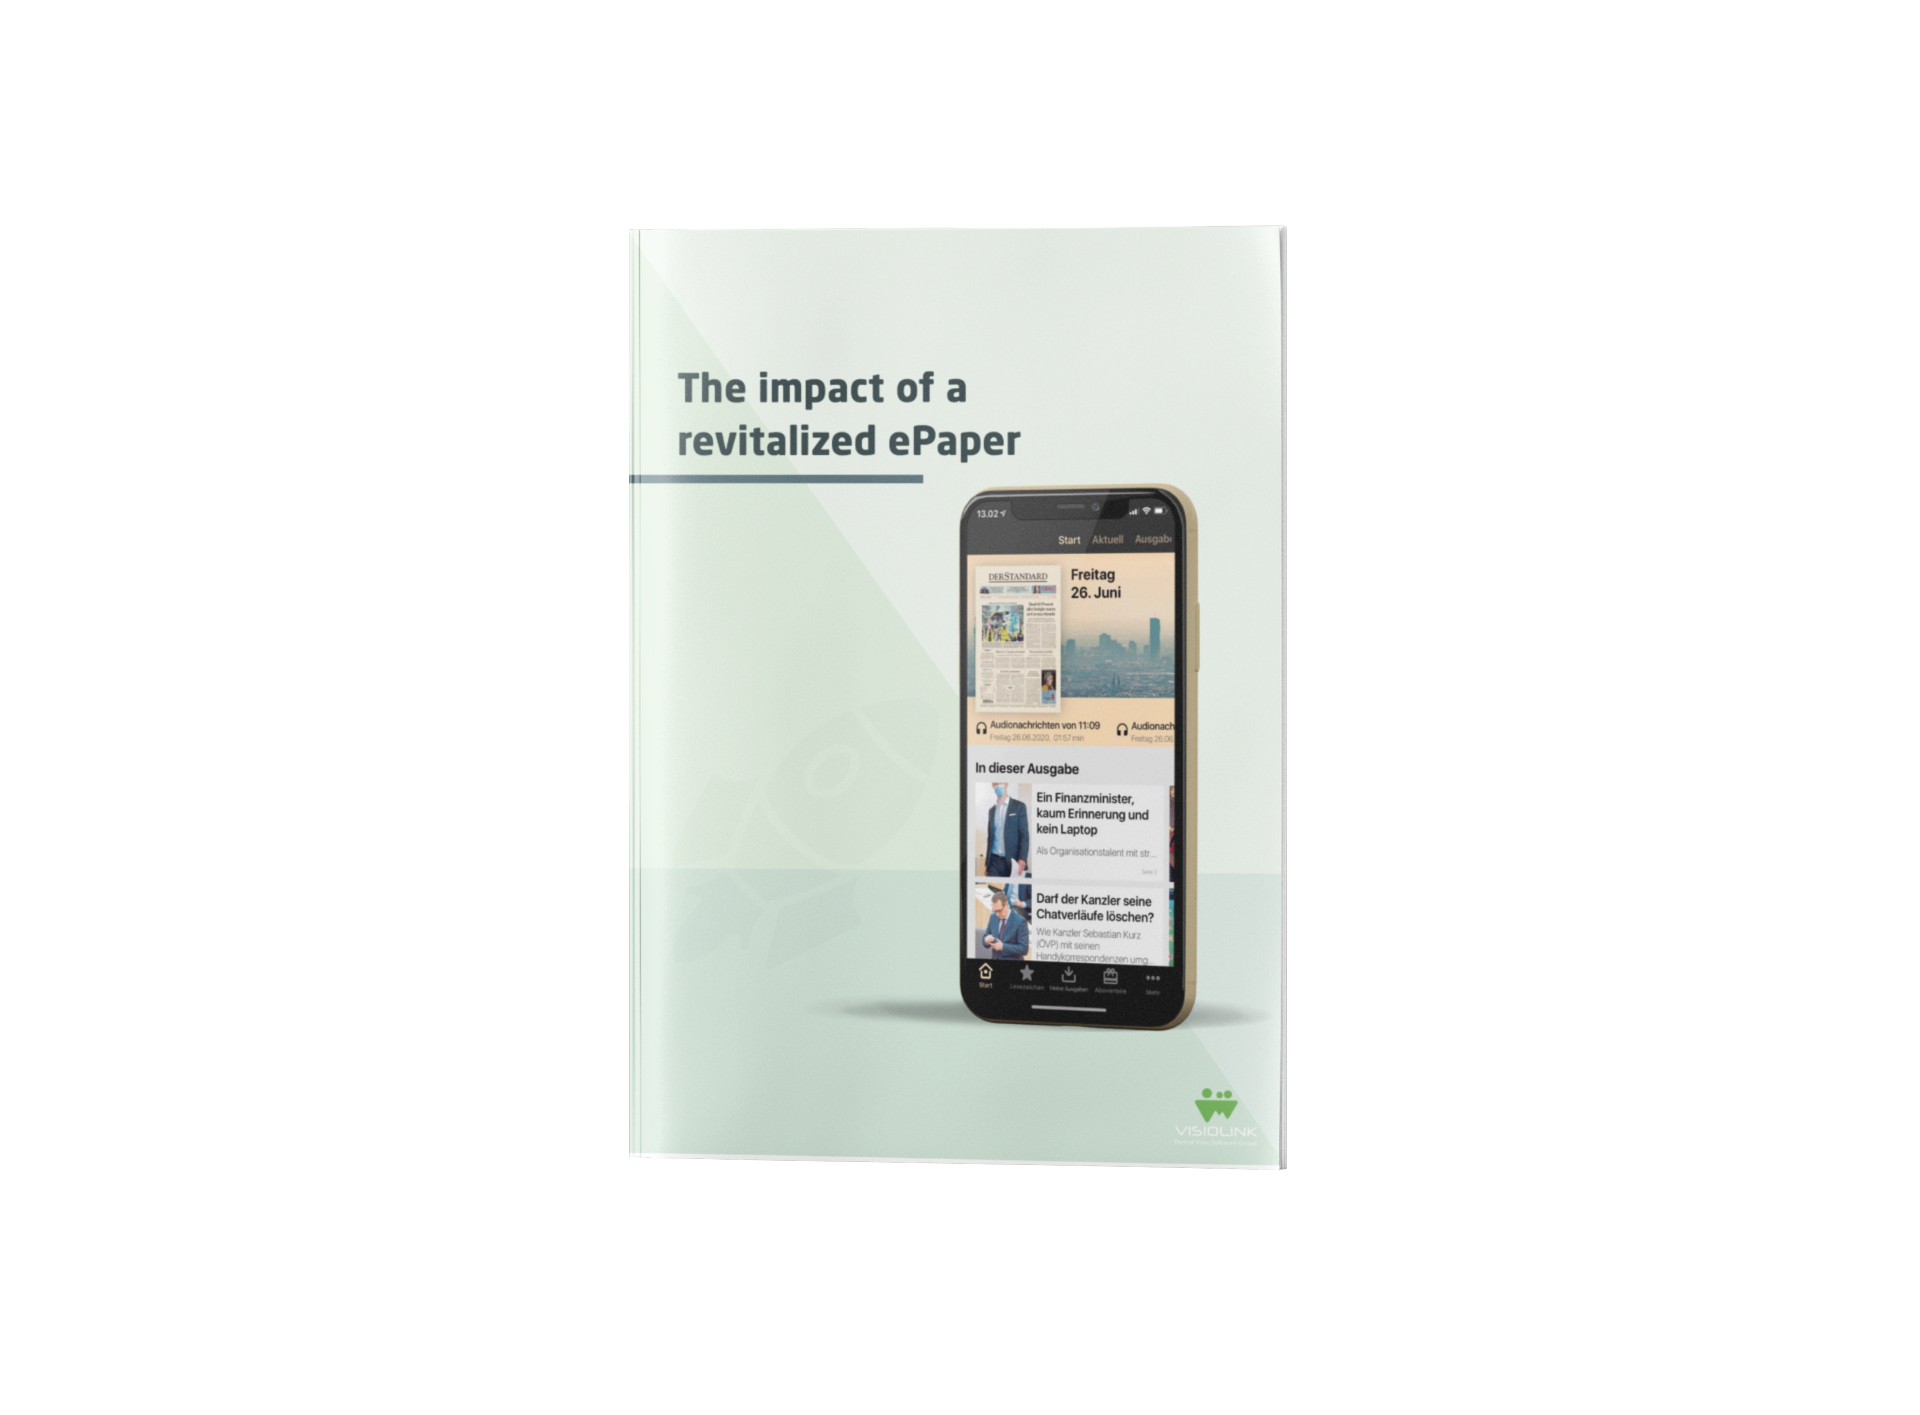 the-impact-of-a-revitalized-epaper-frontpage